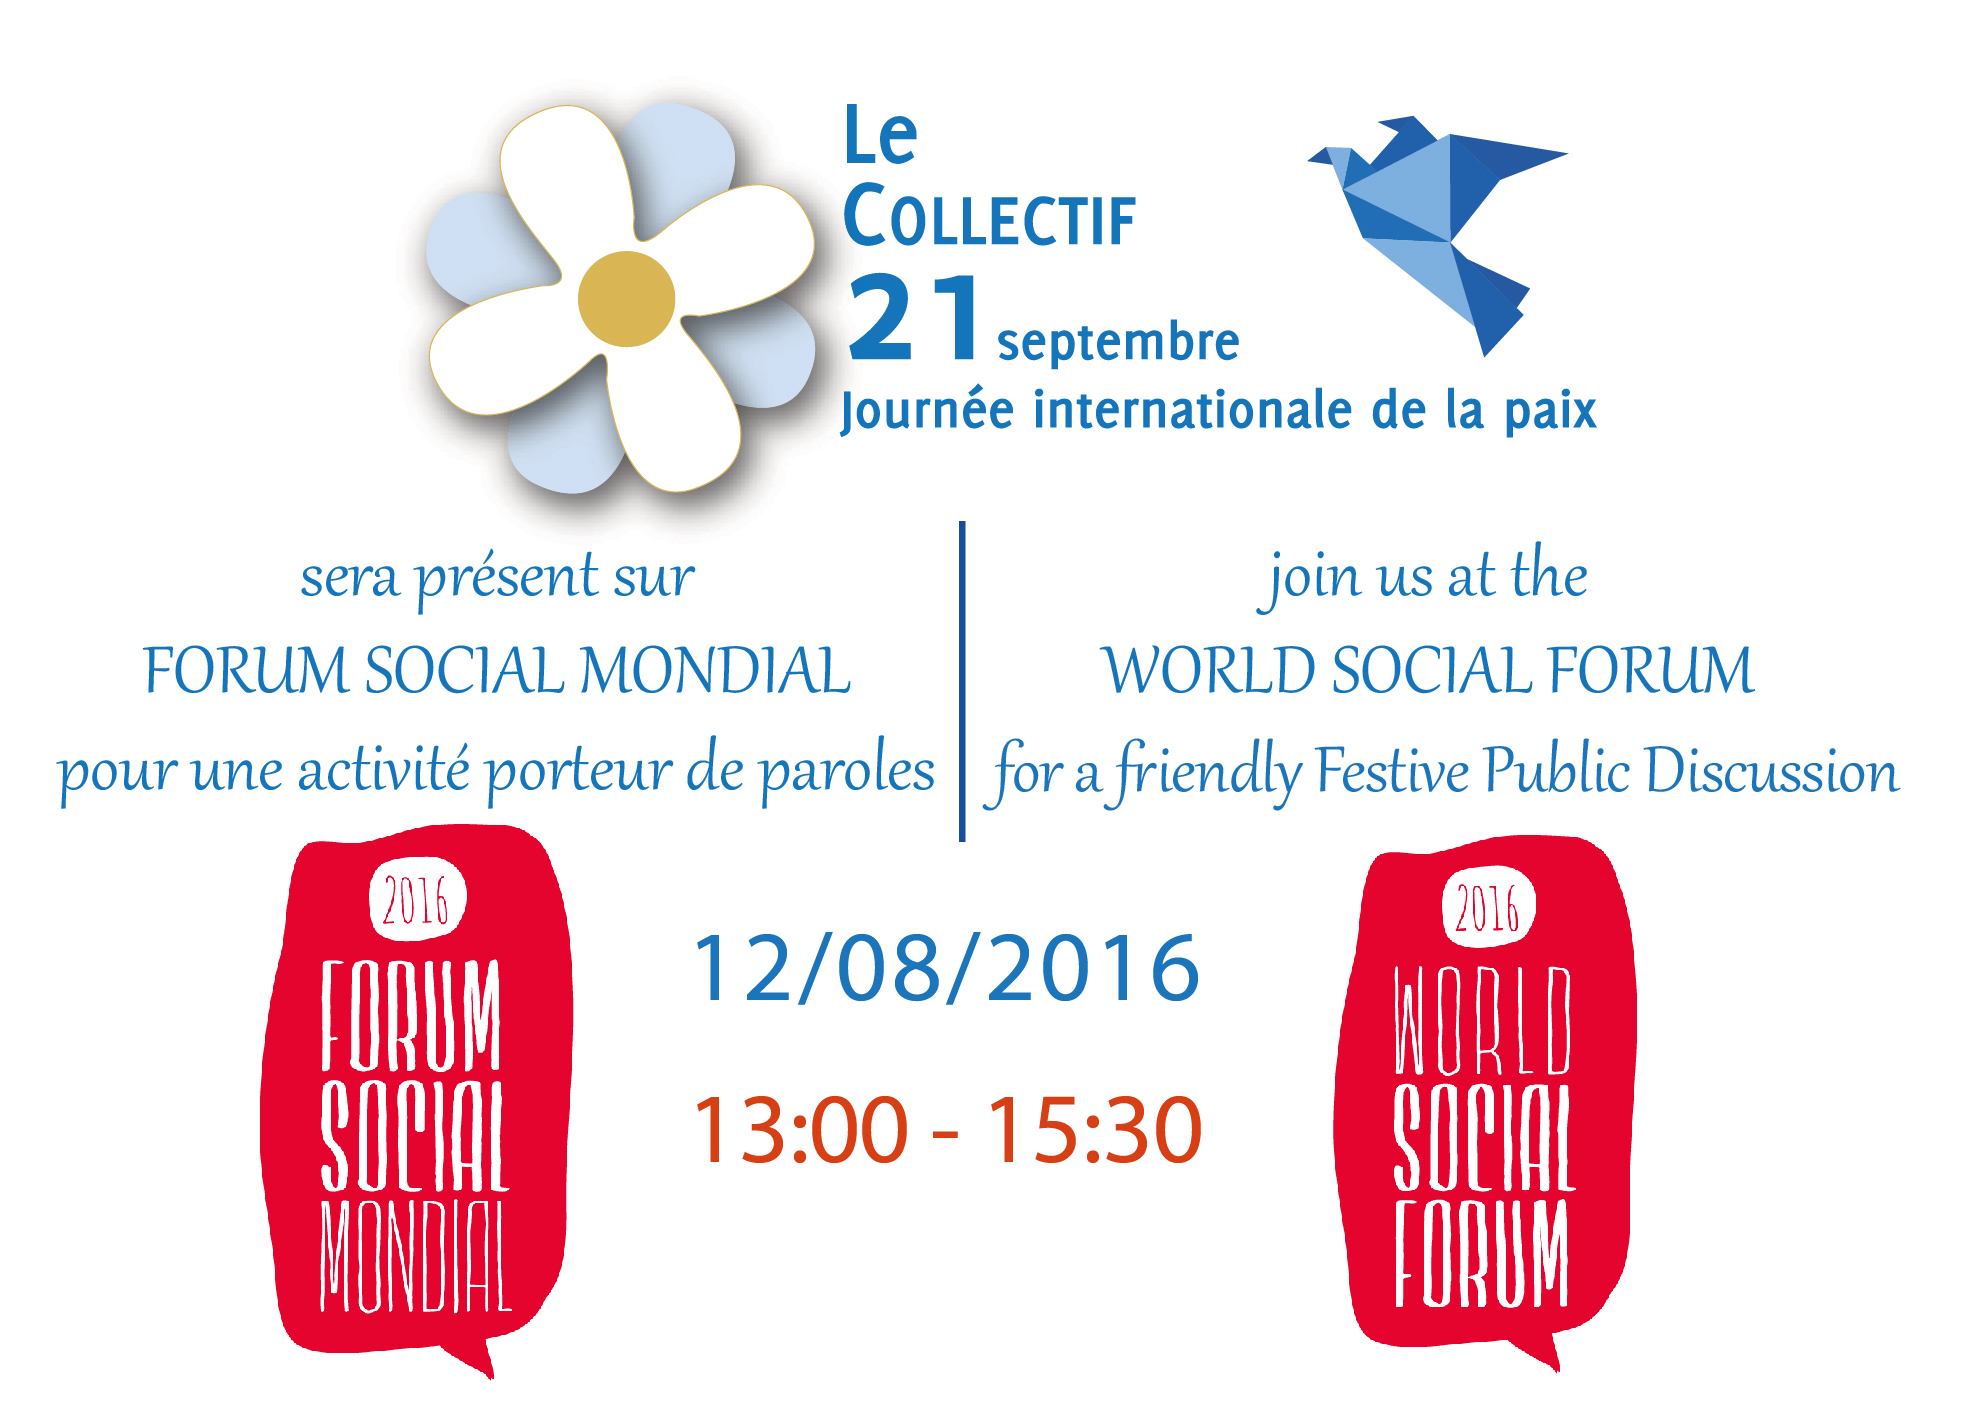 Le collectif 21 septembre - FSM 2016